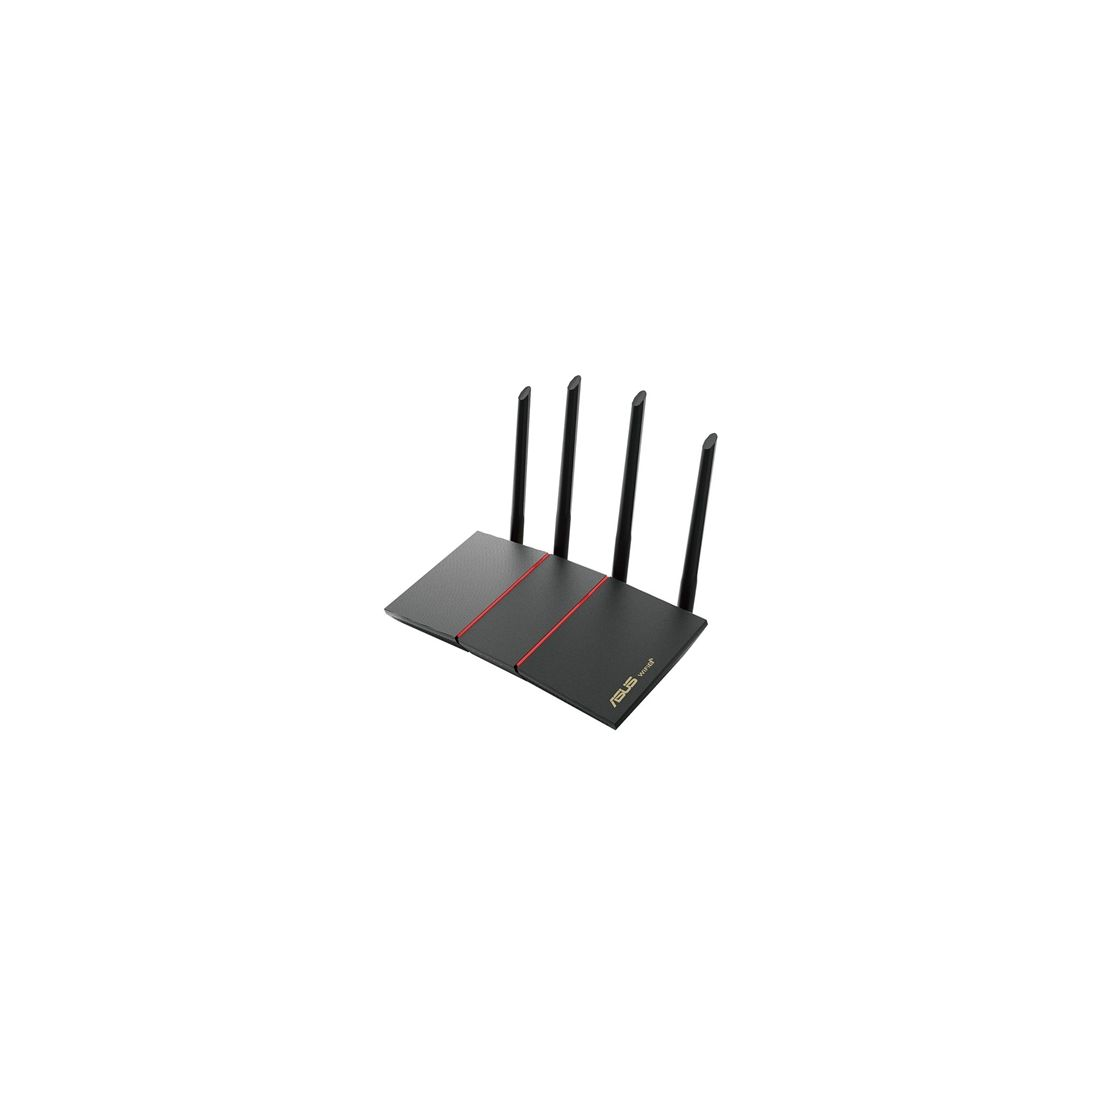 ASUS RT AX55 Router AX1800 WiFi6 Dual Band